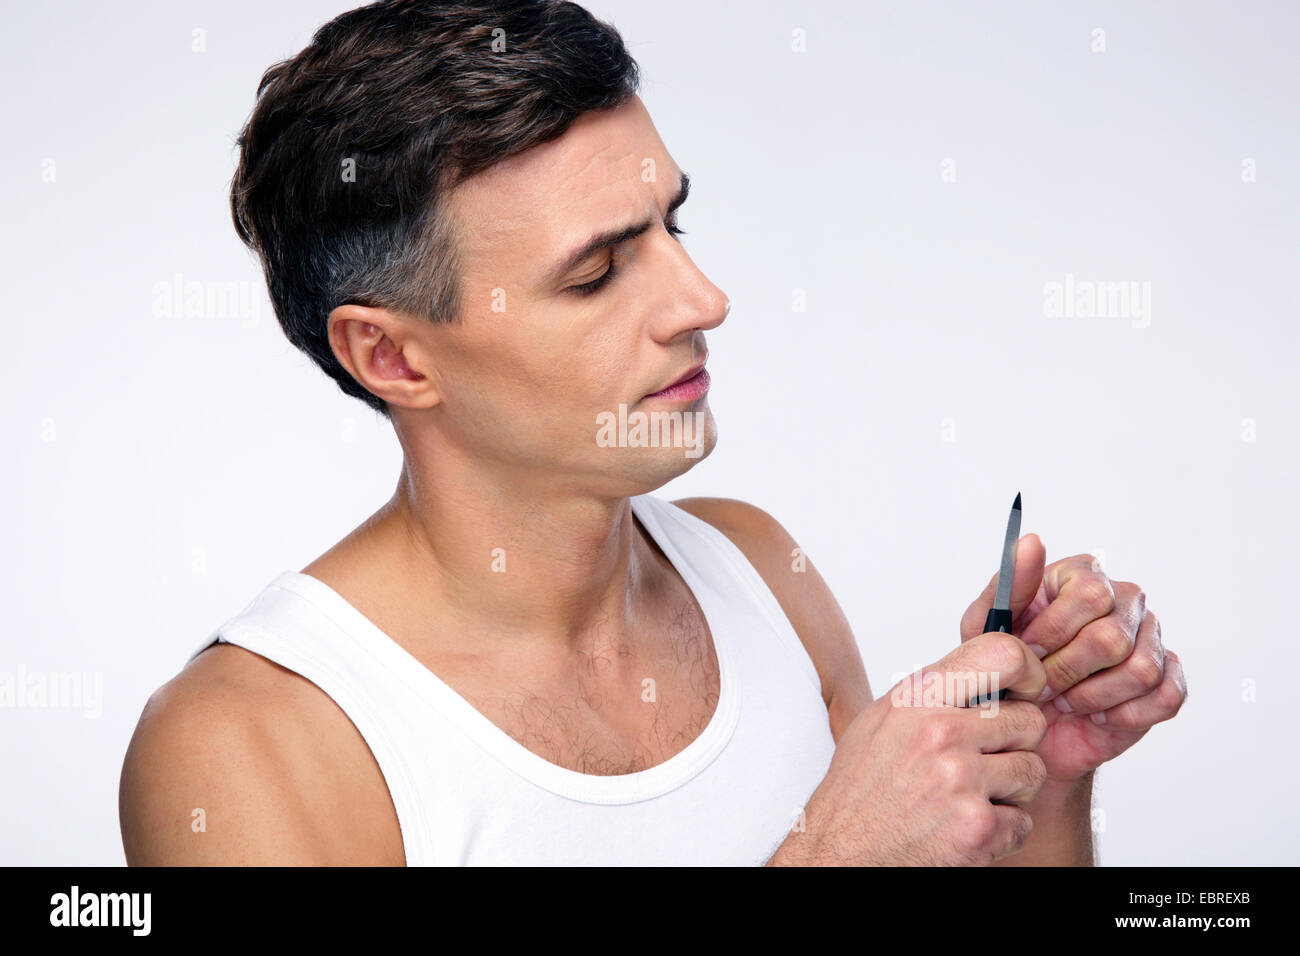 Man doing manicure over gray background - Stock Image